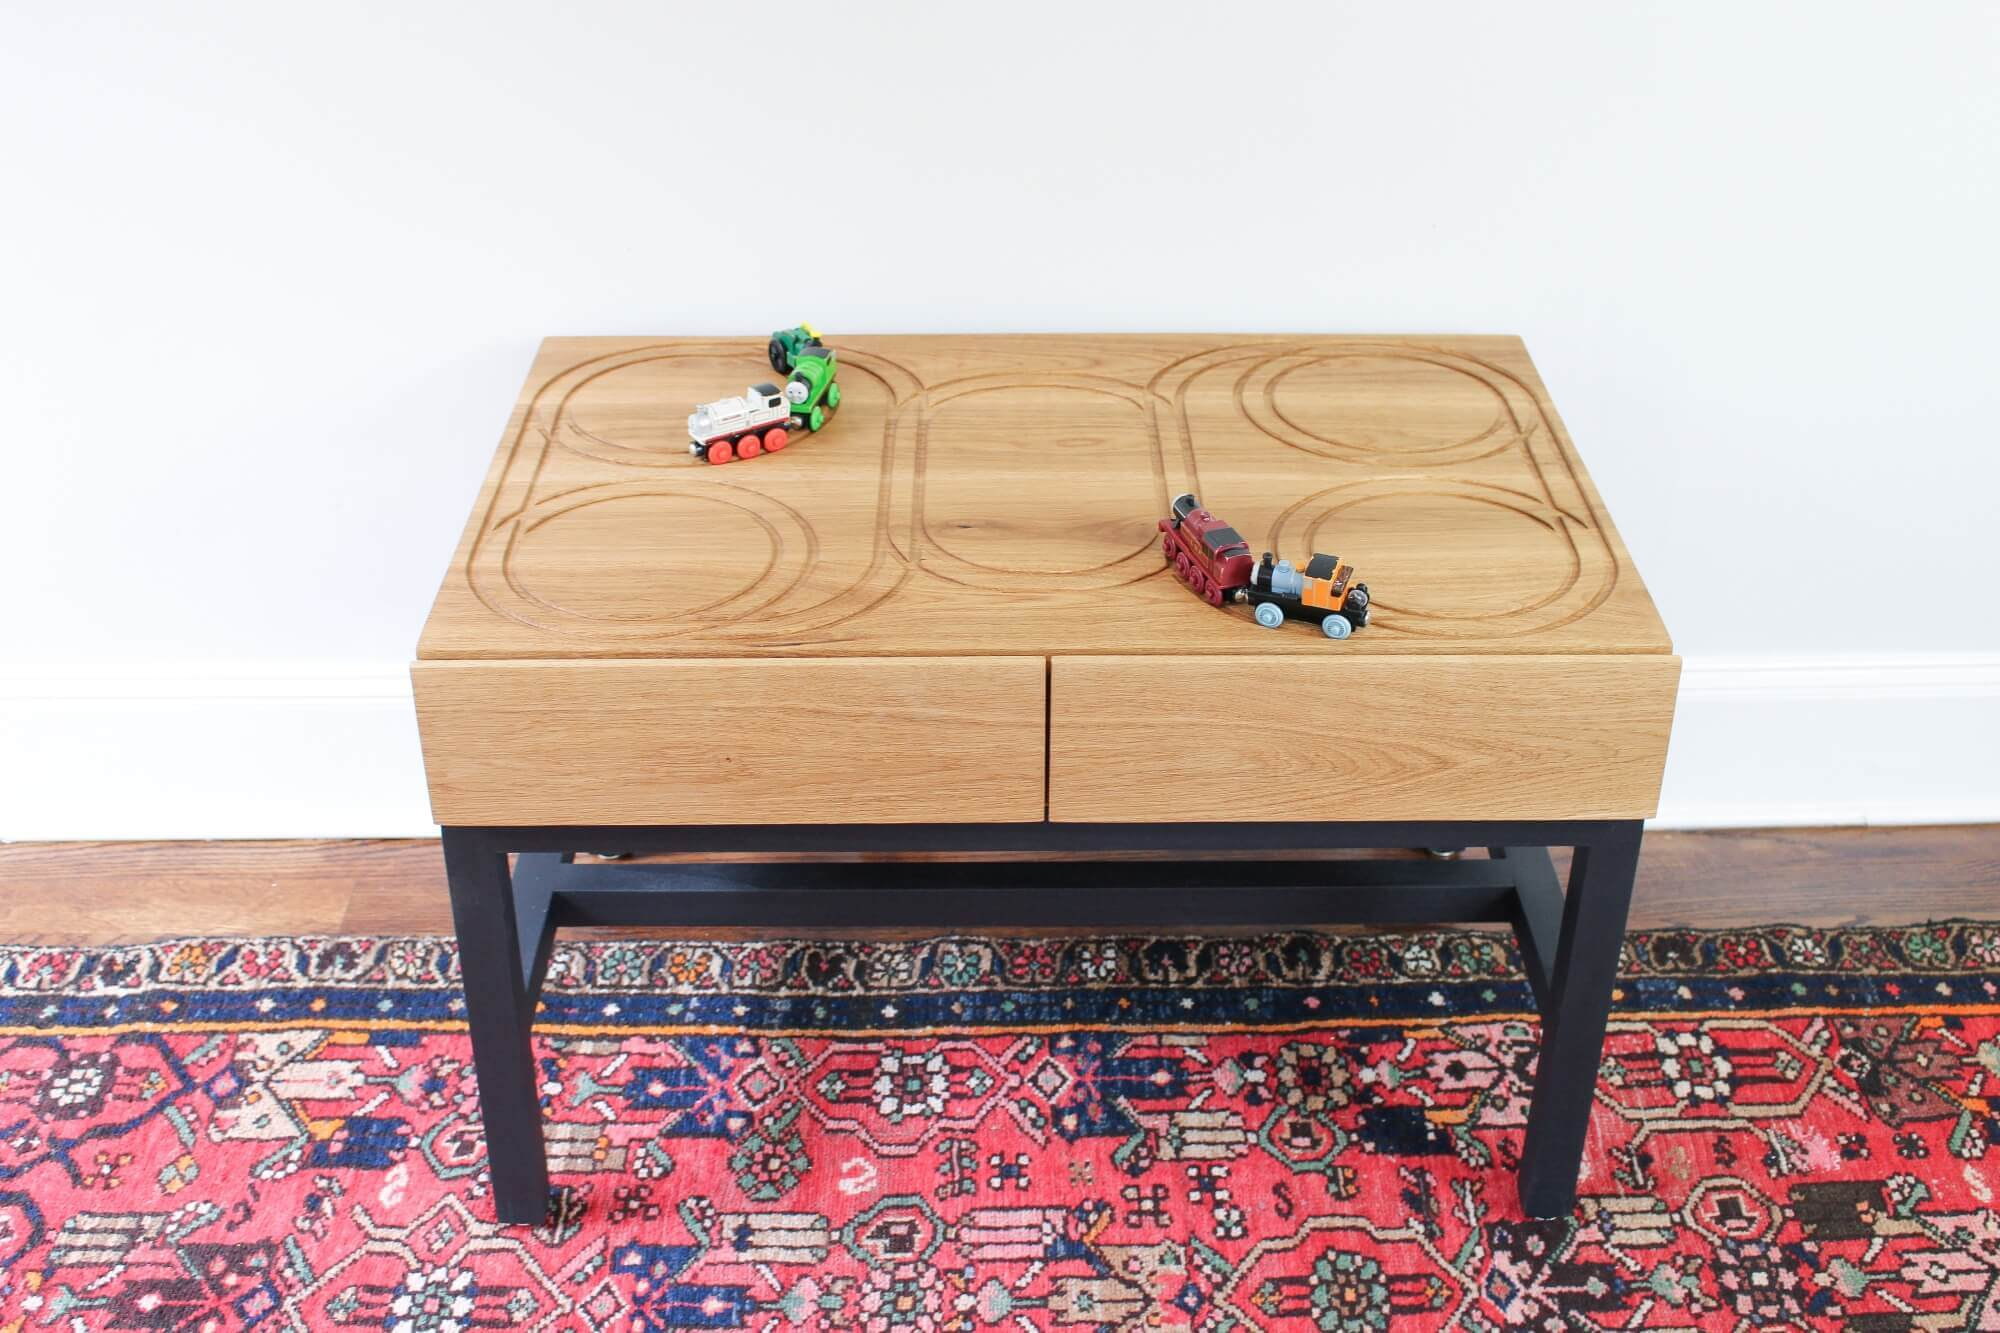 Make your own train table for children with a toy safe wood finish.